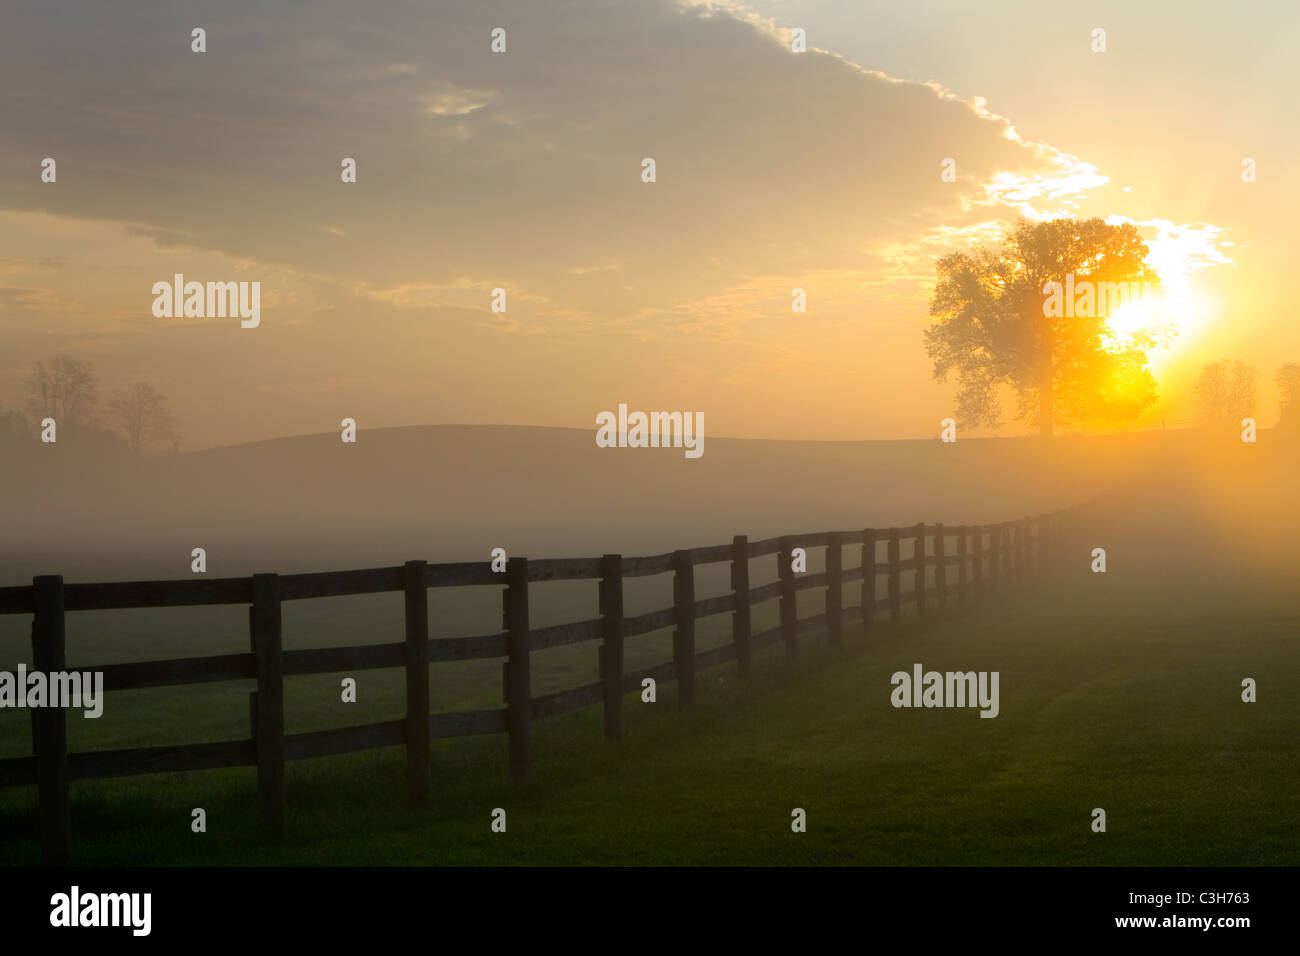 Sunrises over a foggy fenced pasture land behind a tree. - Stock Image